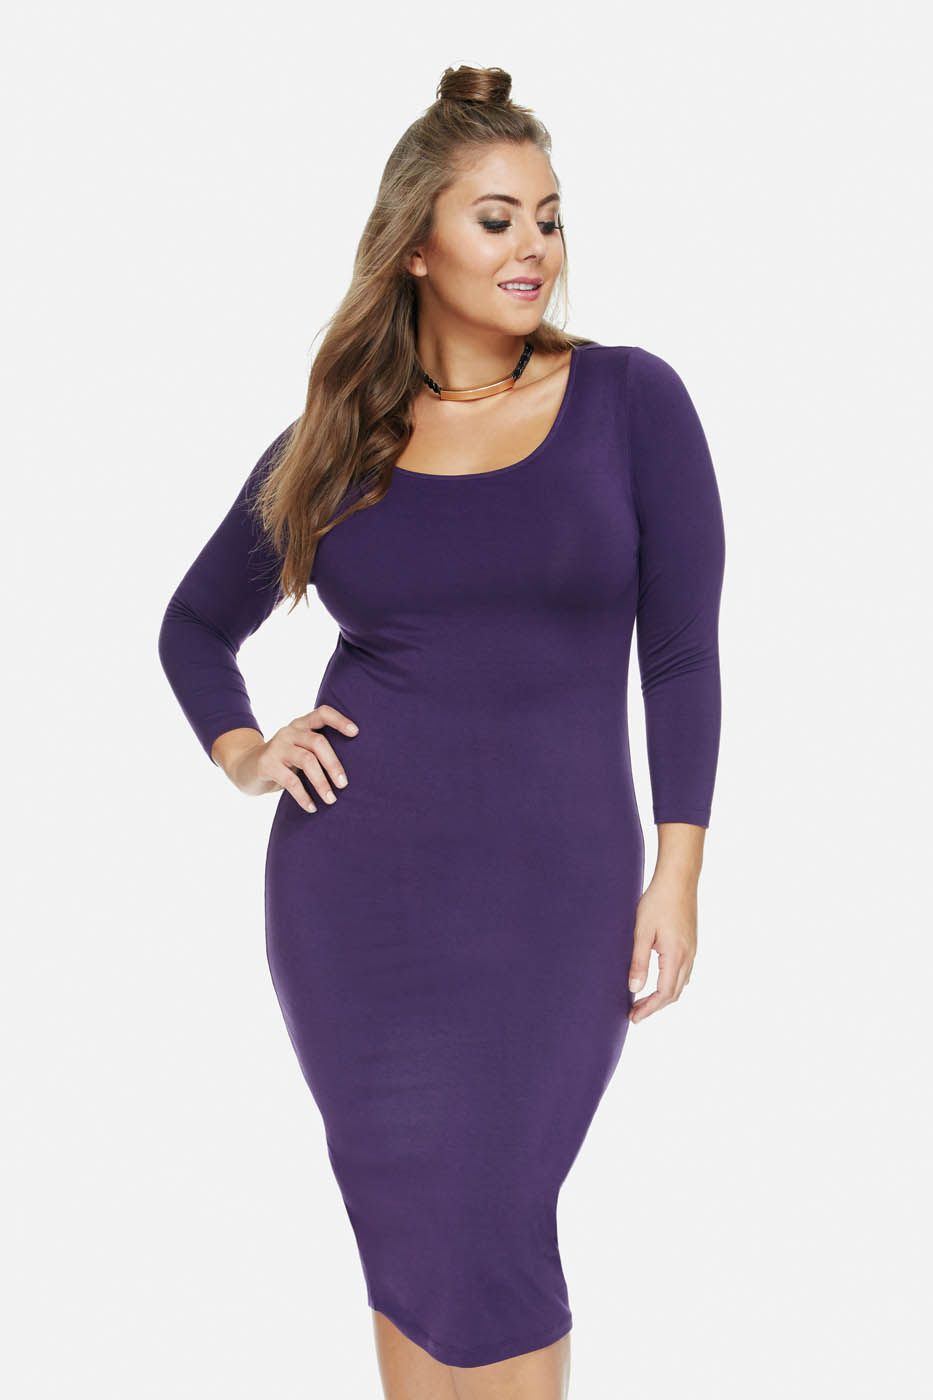 Plus Size The Everyday Midi | Fat Gurl Fly! | Pinterest